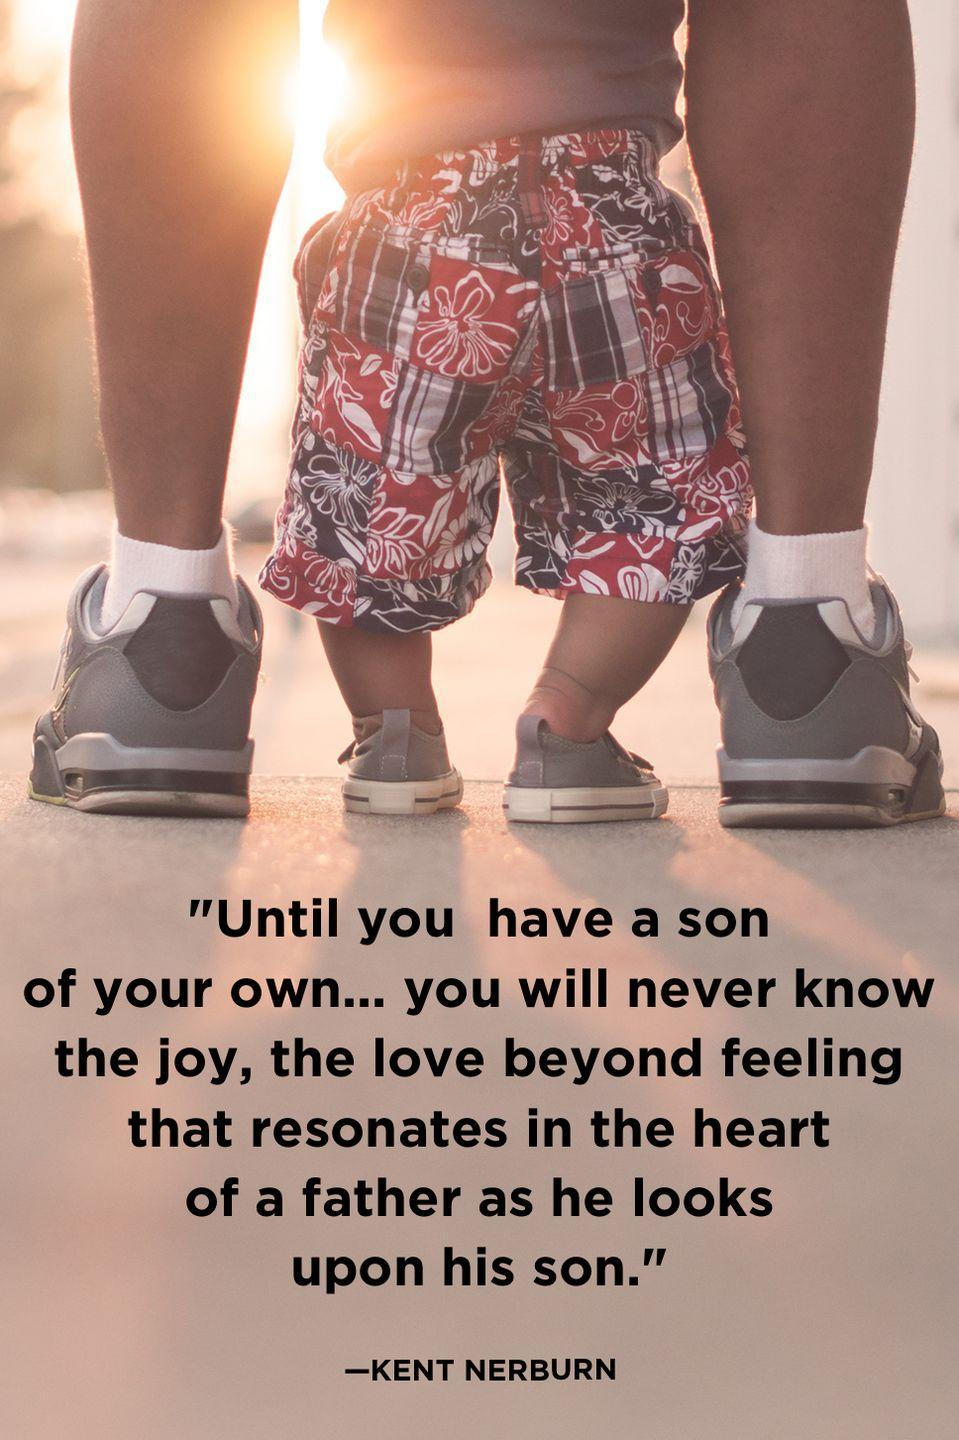 """<p>""""Until you have a son of your own... you will never know the joy, the love beyond feeling that resonates in the heart of a father as he looks upon his son.""""</p>"""